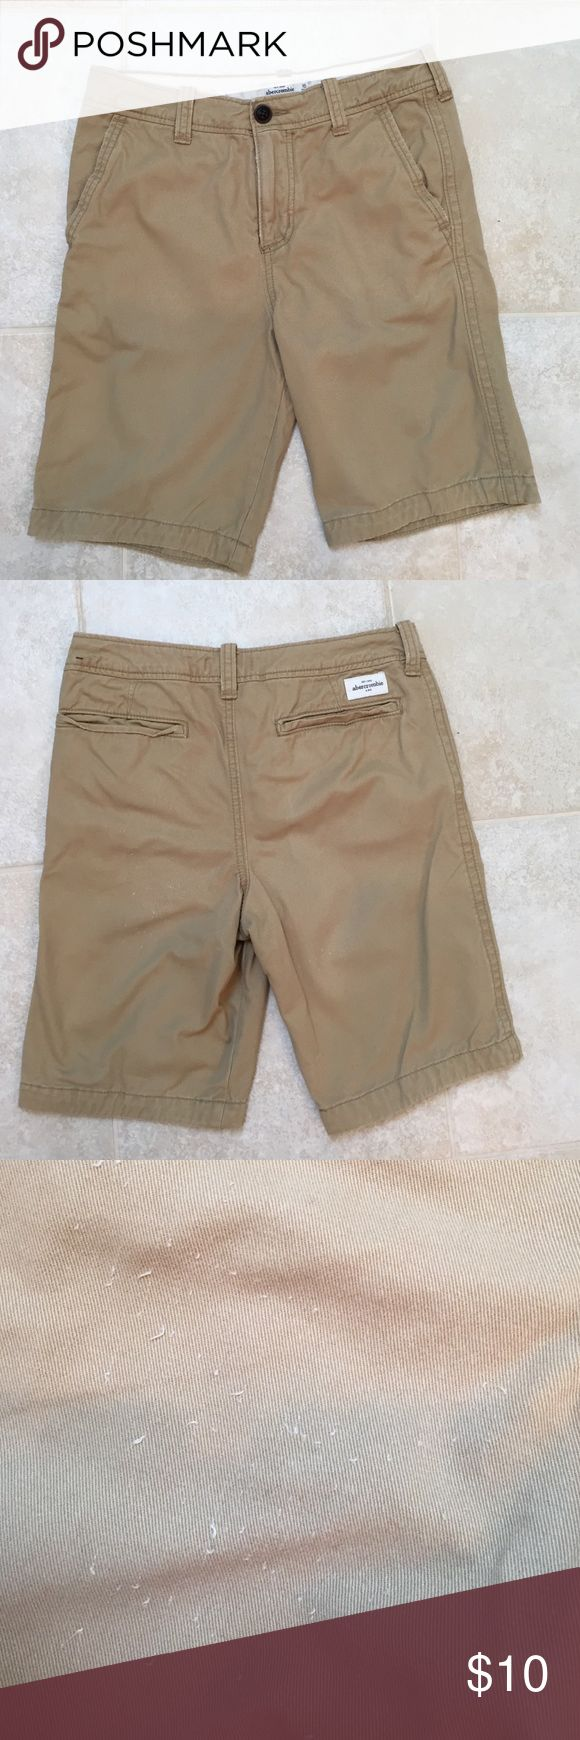 Abercrombie Kids khaki shorts boys size 16 Abercrombie Kids boys size 16 khaki shorts.  Slight wear on back of one leg that I never noticed till after I took picture.  There is a picture that shows what looks like a few little snags of the lighter color thread.  Price reflects the condition.  Shorts are still in great condition.  Thick 100% cotton. abercrombie kids Bottoms Shorts